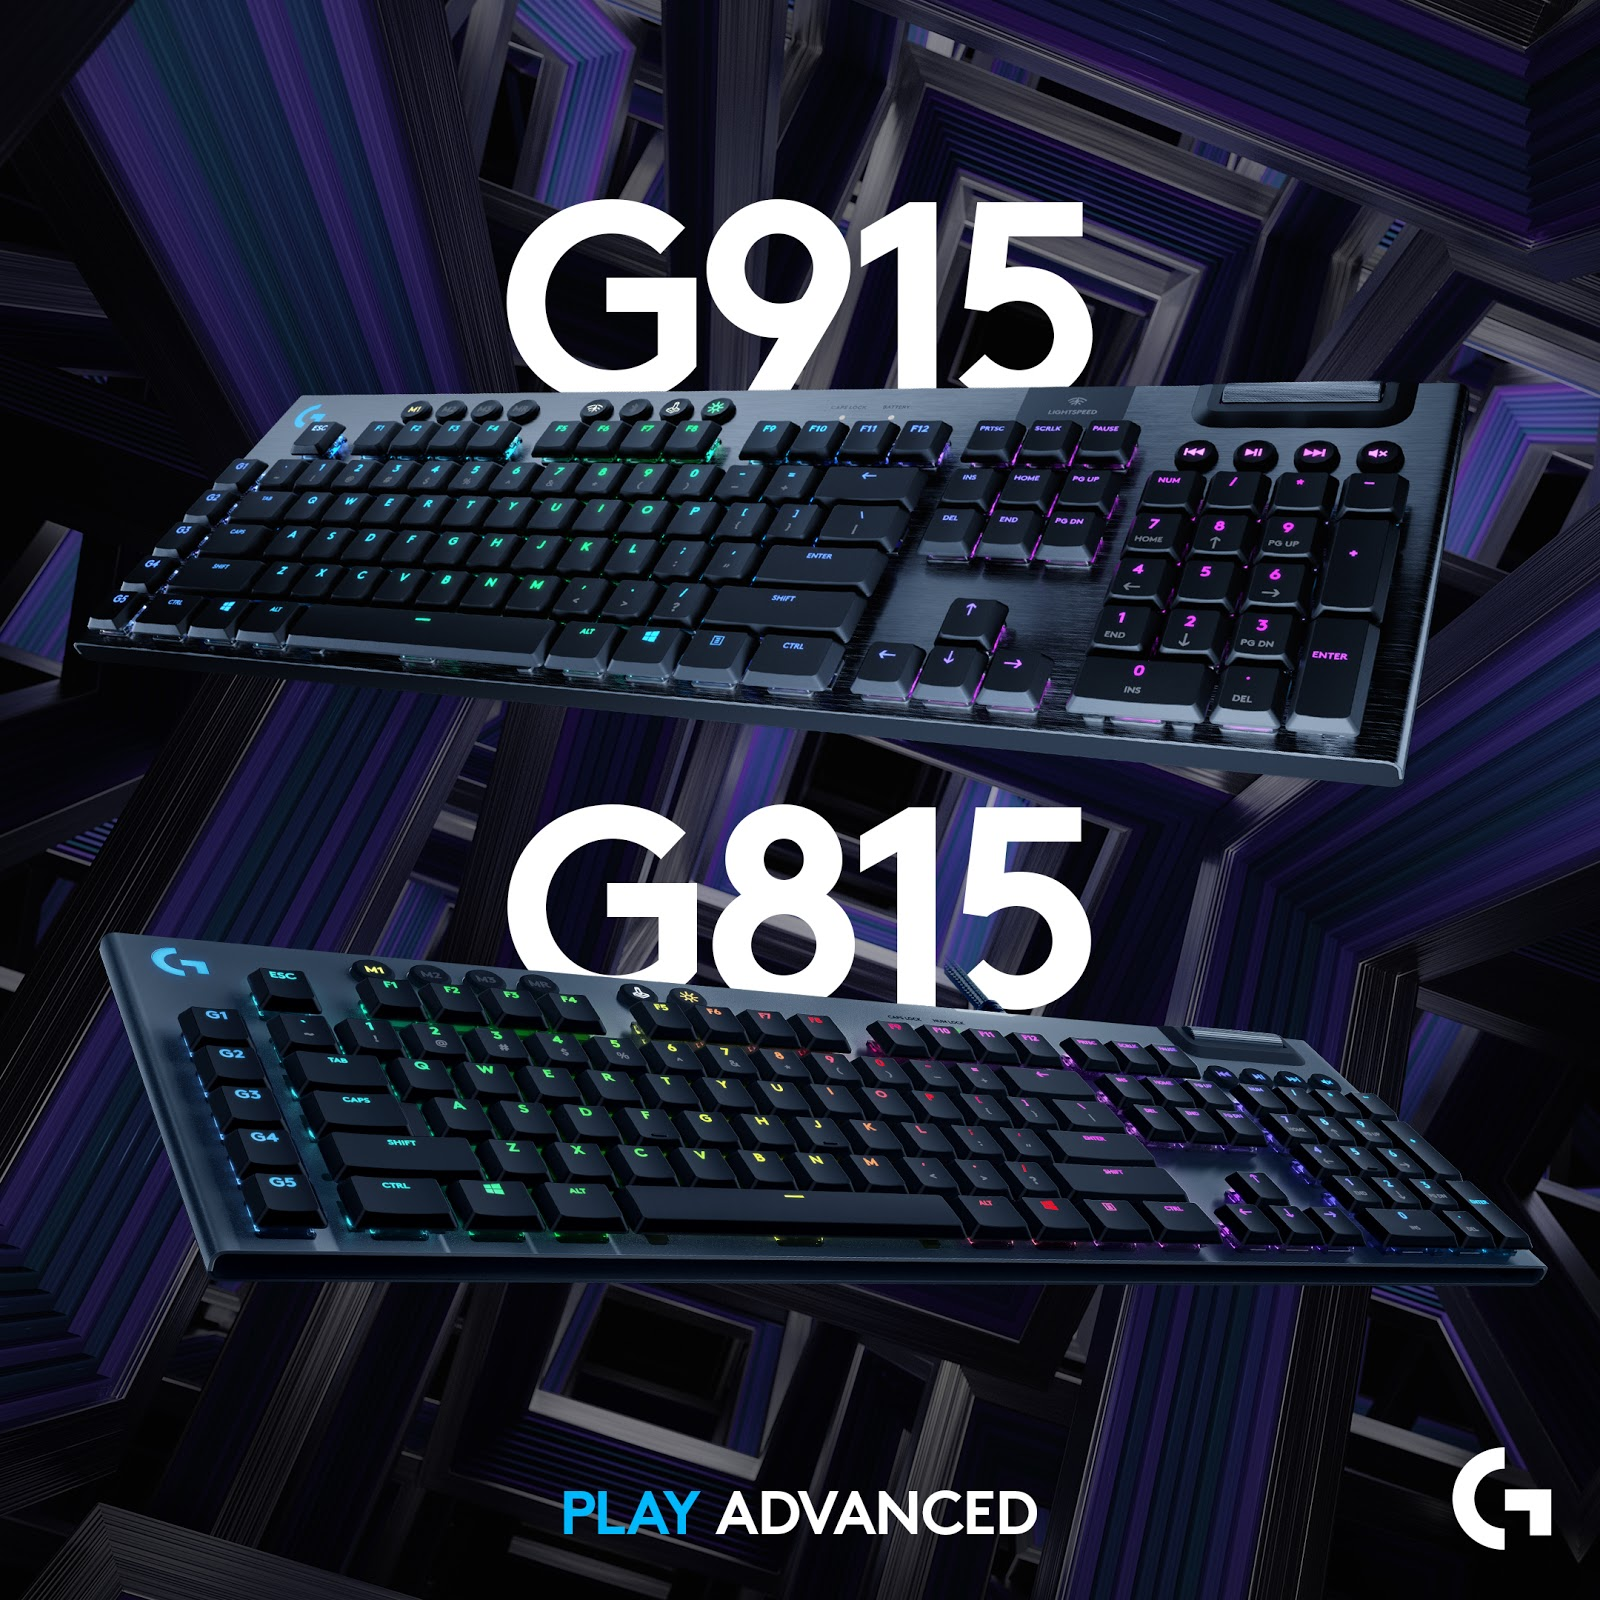 Logitech launches mechanical keyboards with new low-profile